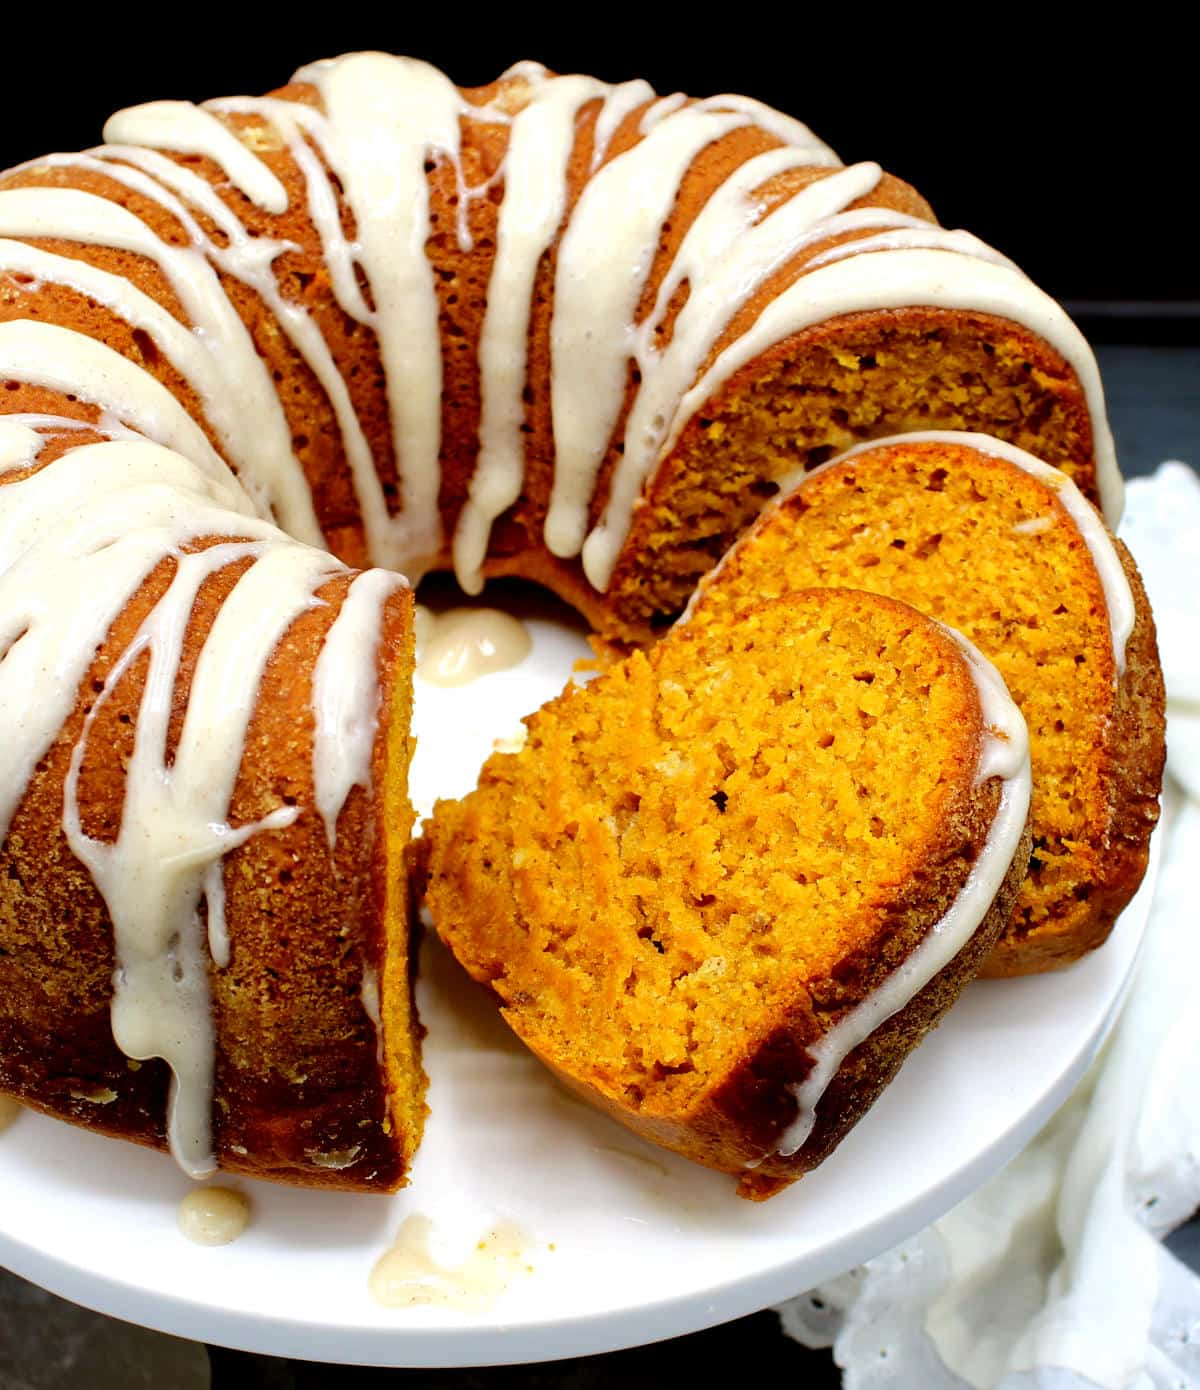 Closeup photo of pumpkin cake with vegan cream cheese glaze and two slices on cake stand.